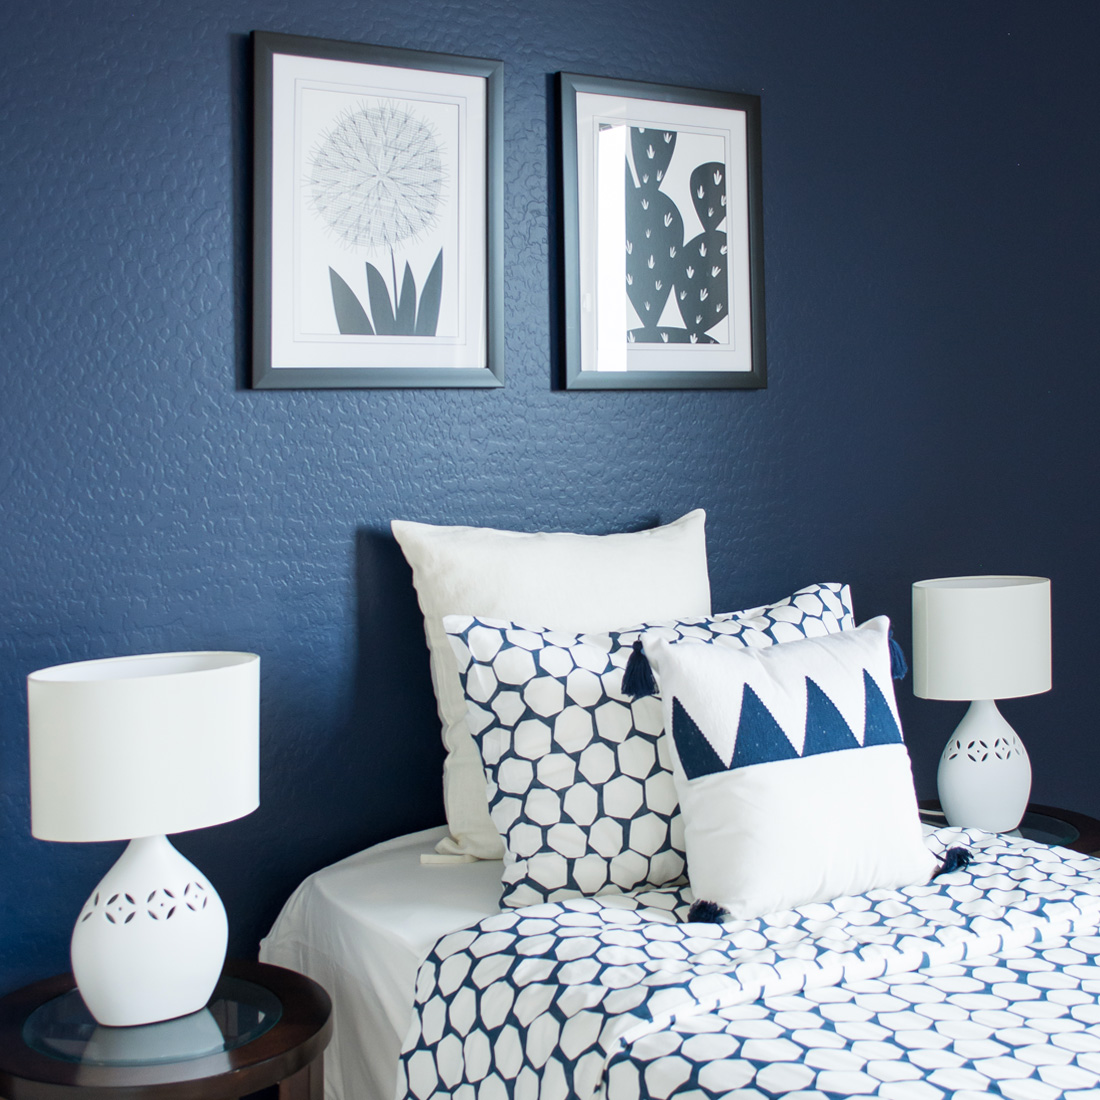 SW Naval Accent Wall